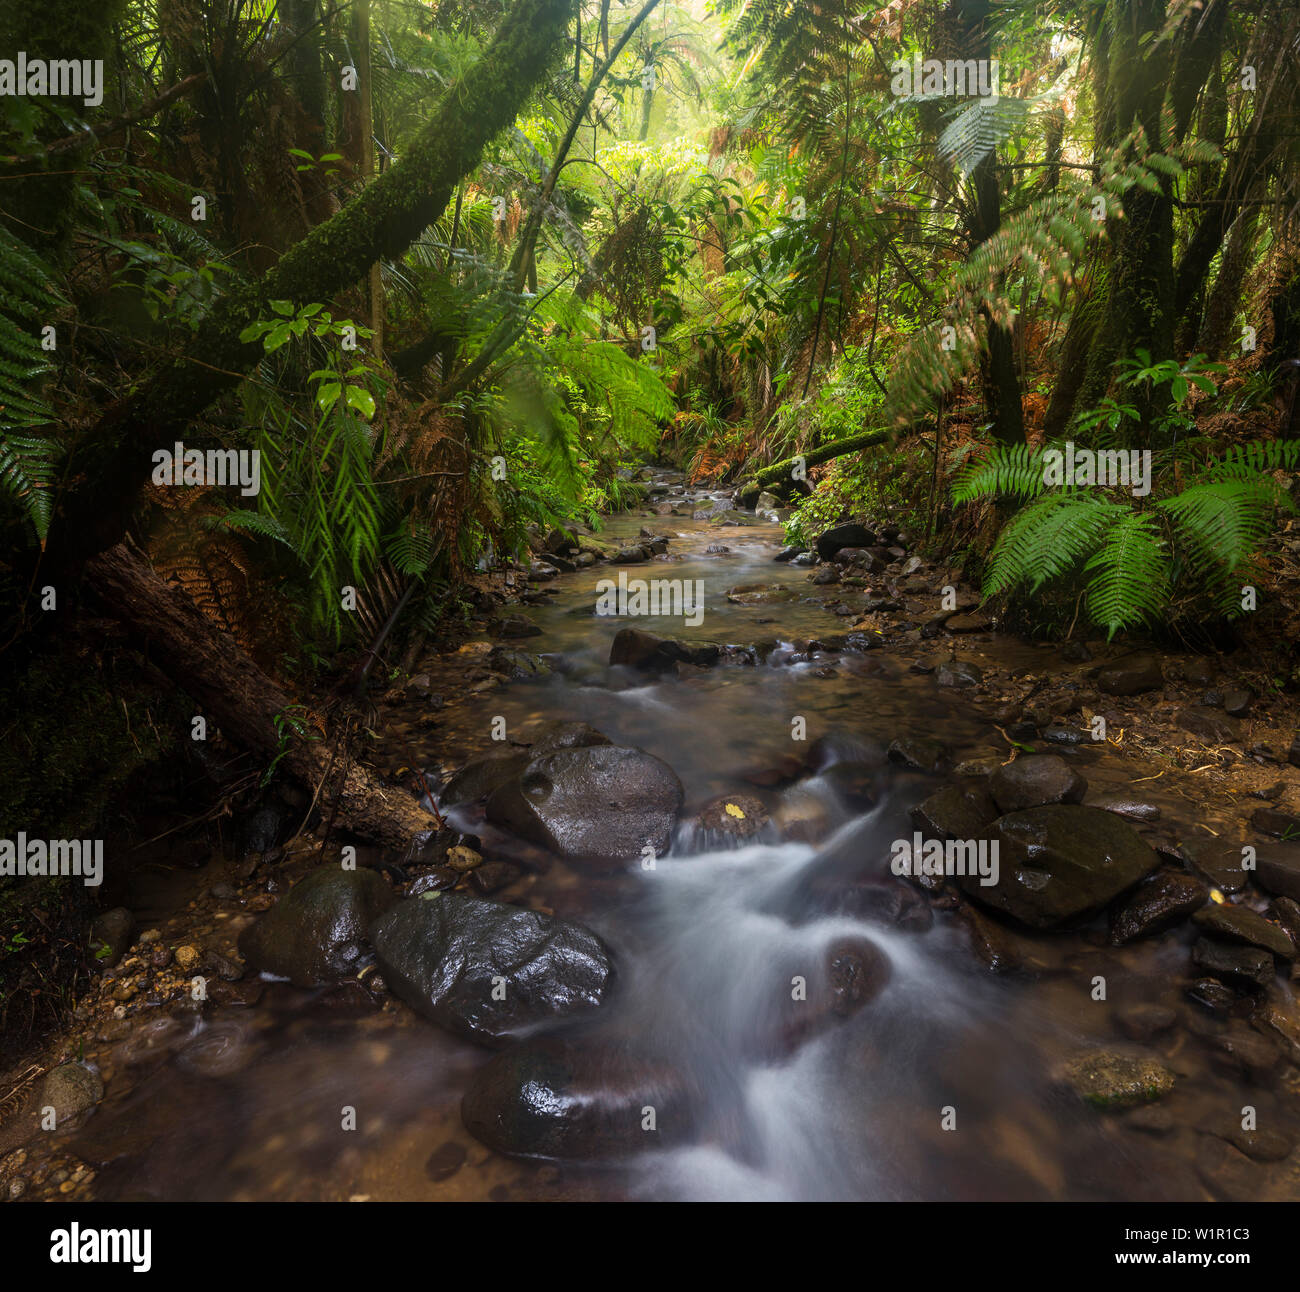 Rainforest and stream, Coromandel, Thames-Coromandel District, Coromandel Peninsula, North Island, New Zealand, Oceania - Stock Image